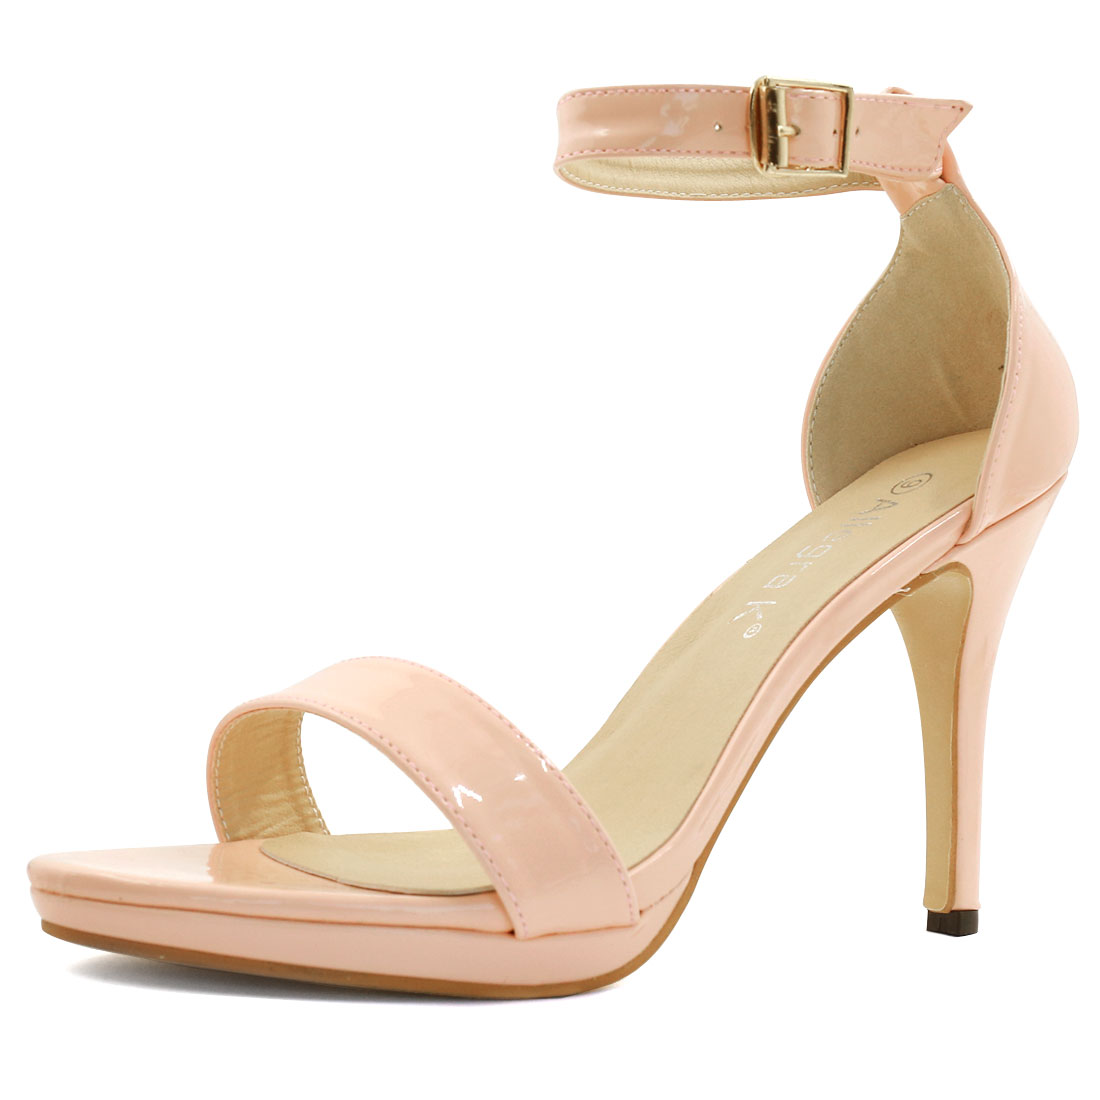 Woman Open Toe High Heel Metallic Ankle Strap Sandals Pink US 7.5